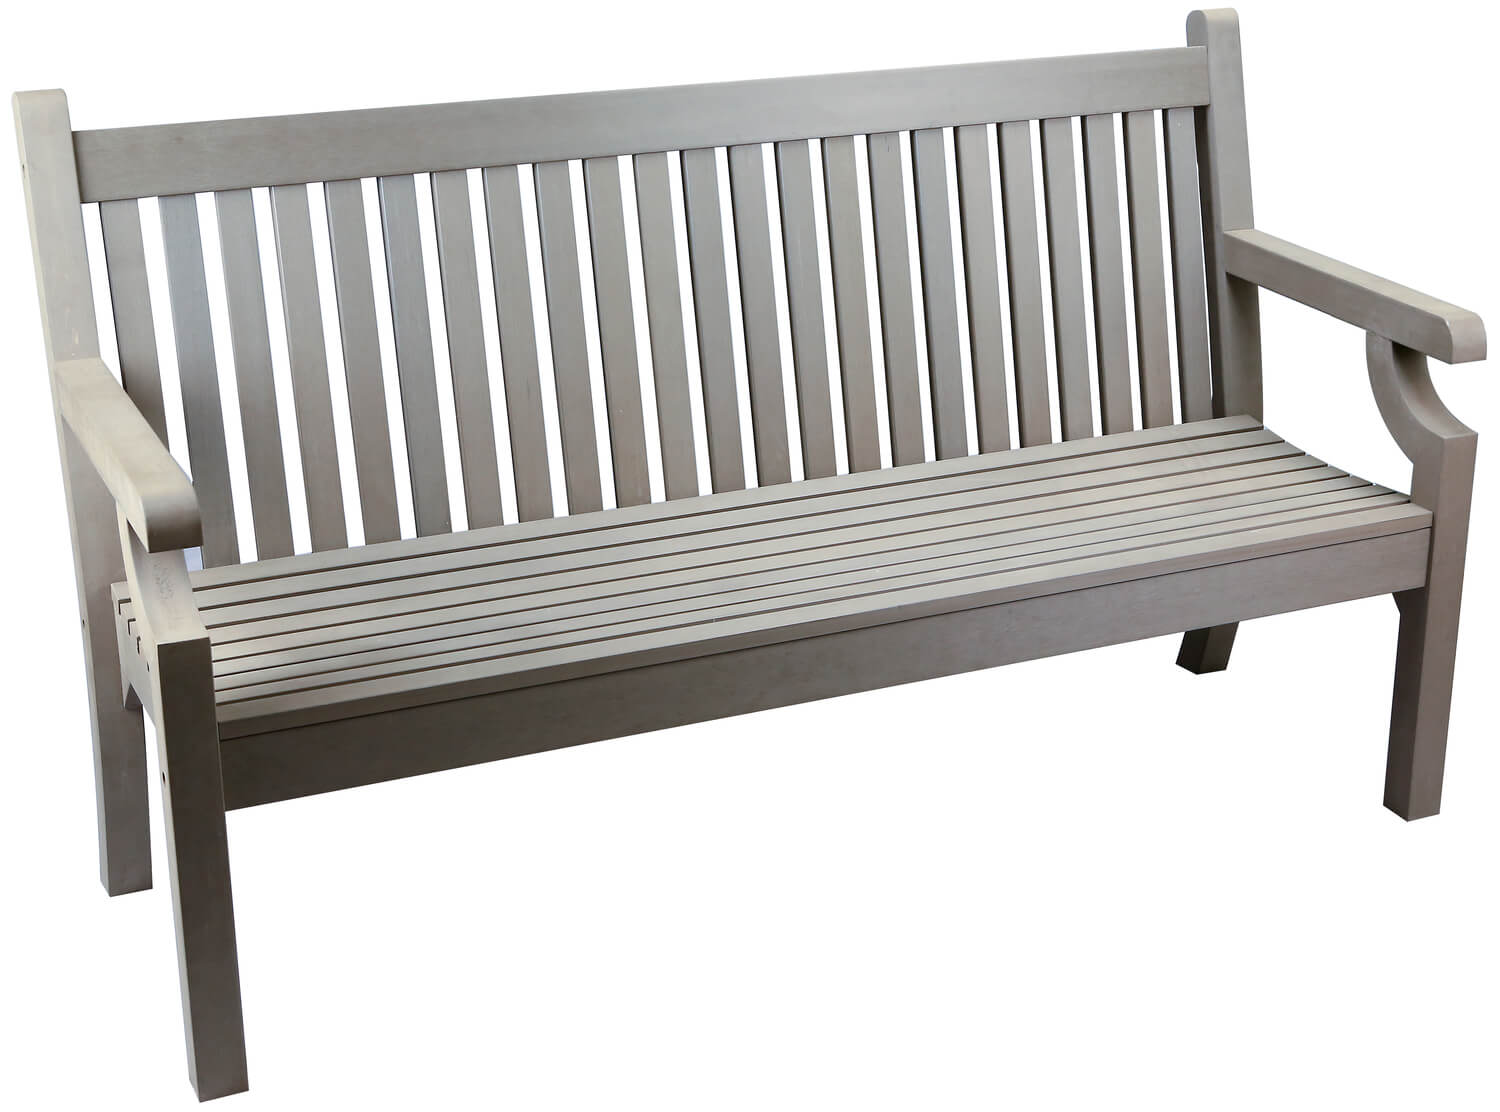 Marvelous Sandwick Winawood 3 Seater Wood Effect Garden Bench Grey Finish Bralicious Painted Fabric Chair Ideas Braliciousco